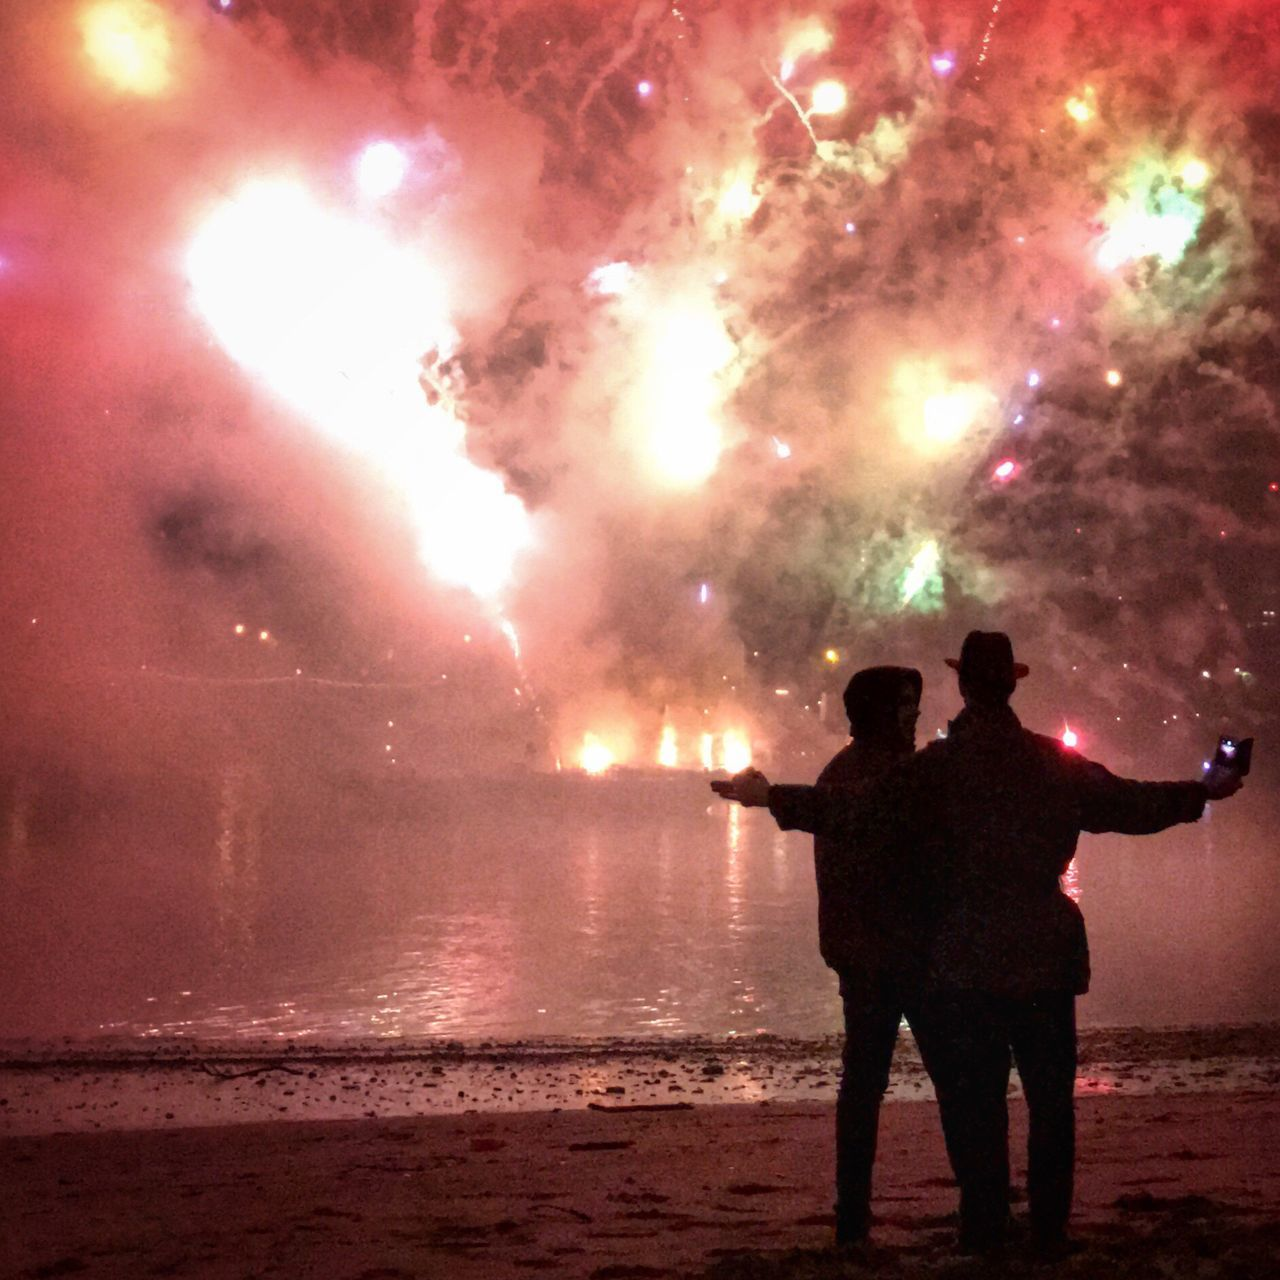 real people, night, firework display, silhouette, firework - man made object, water, standing, smoke - physical structure, men, celebration, arts culture and entertainment, outdoors, event, illuminated, lifestyles, firework, sky, leisure activity, sea, two people, togetherness, nature, people